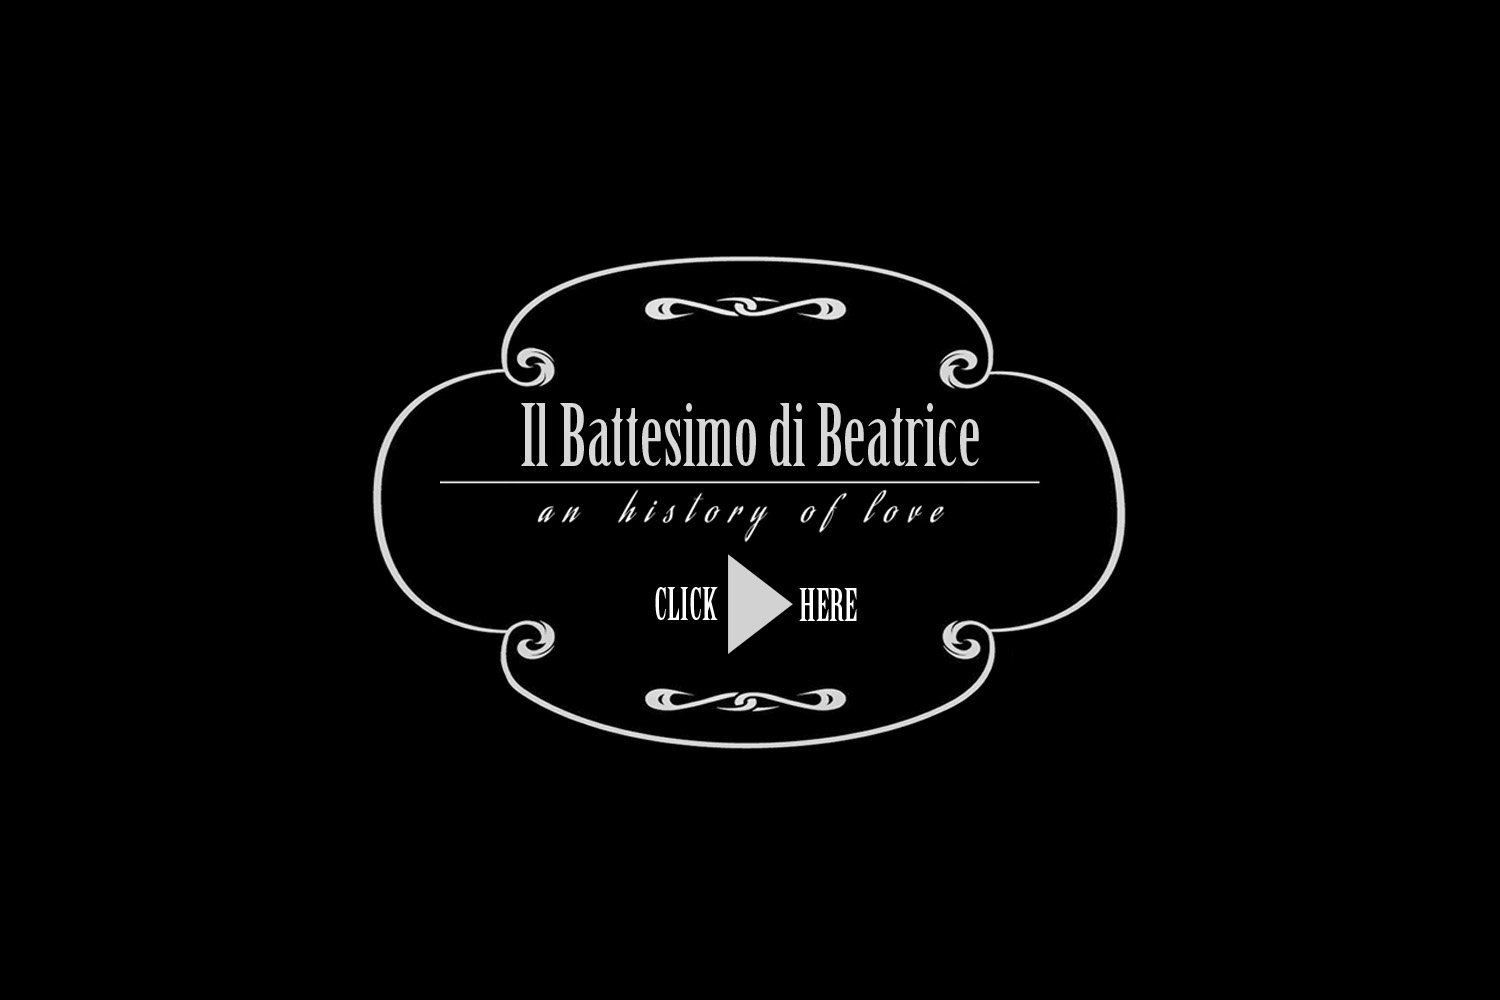 Rovereto Battesimo Beatrice